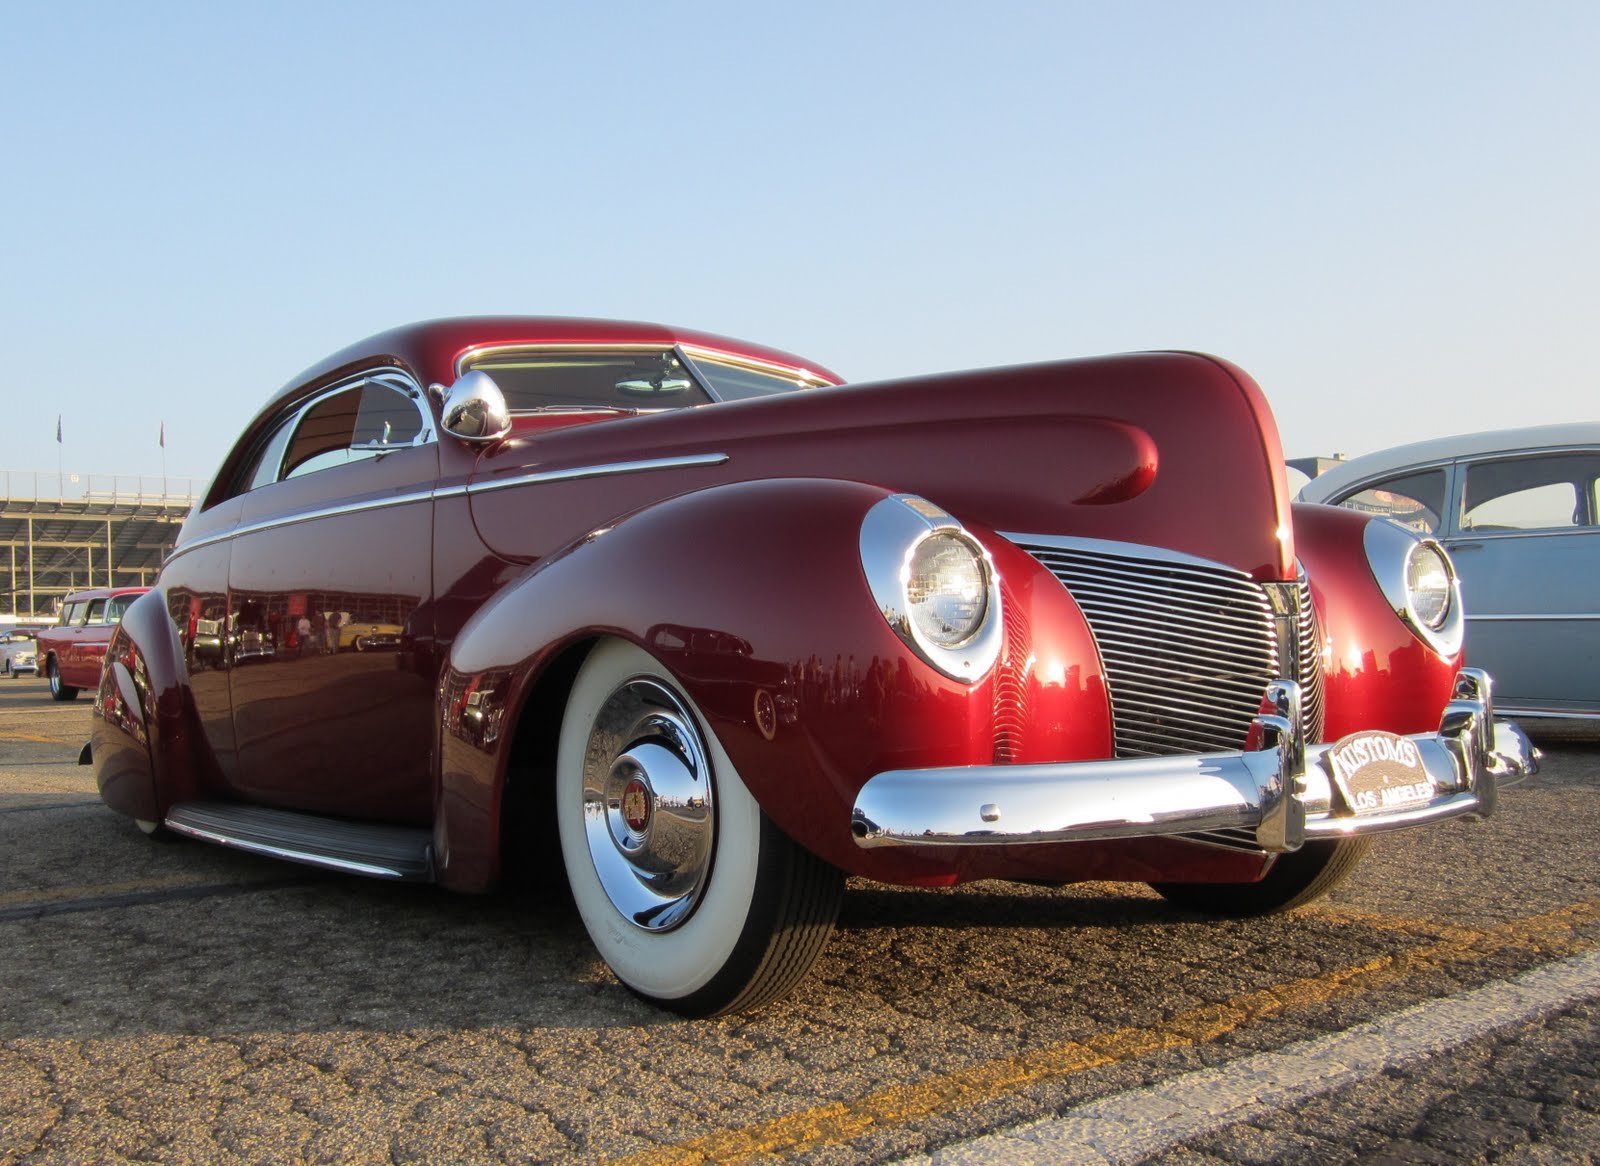 Covering Classic Cars : Pomona Swap Meet 8/14